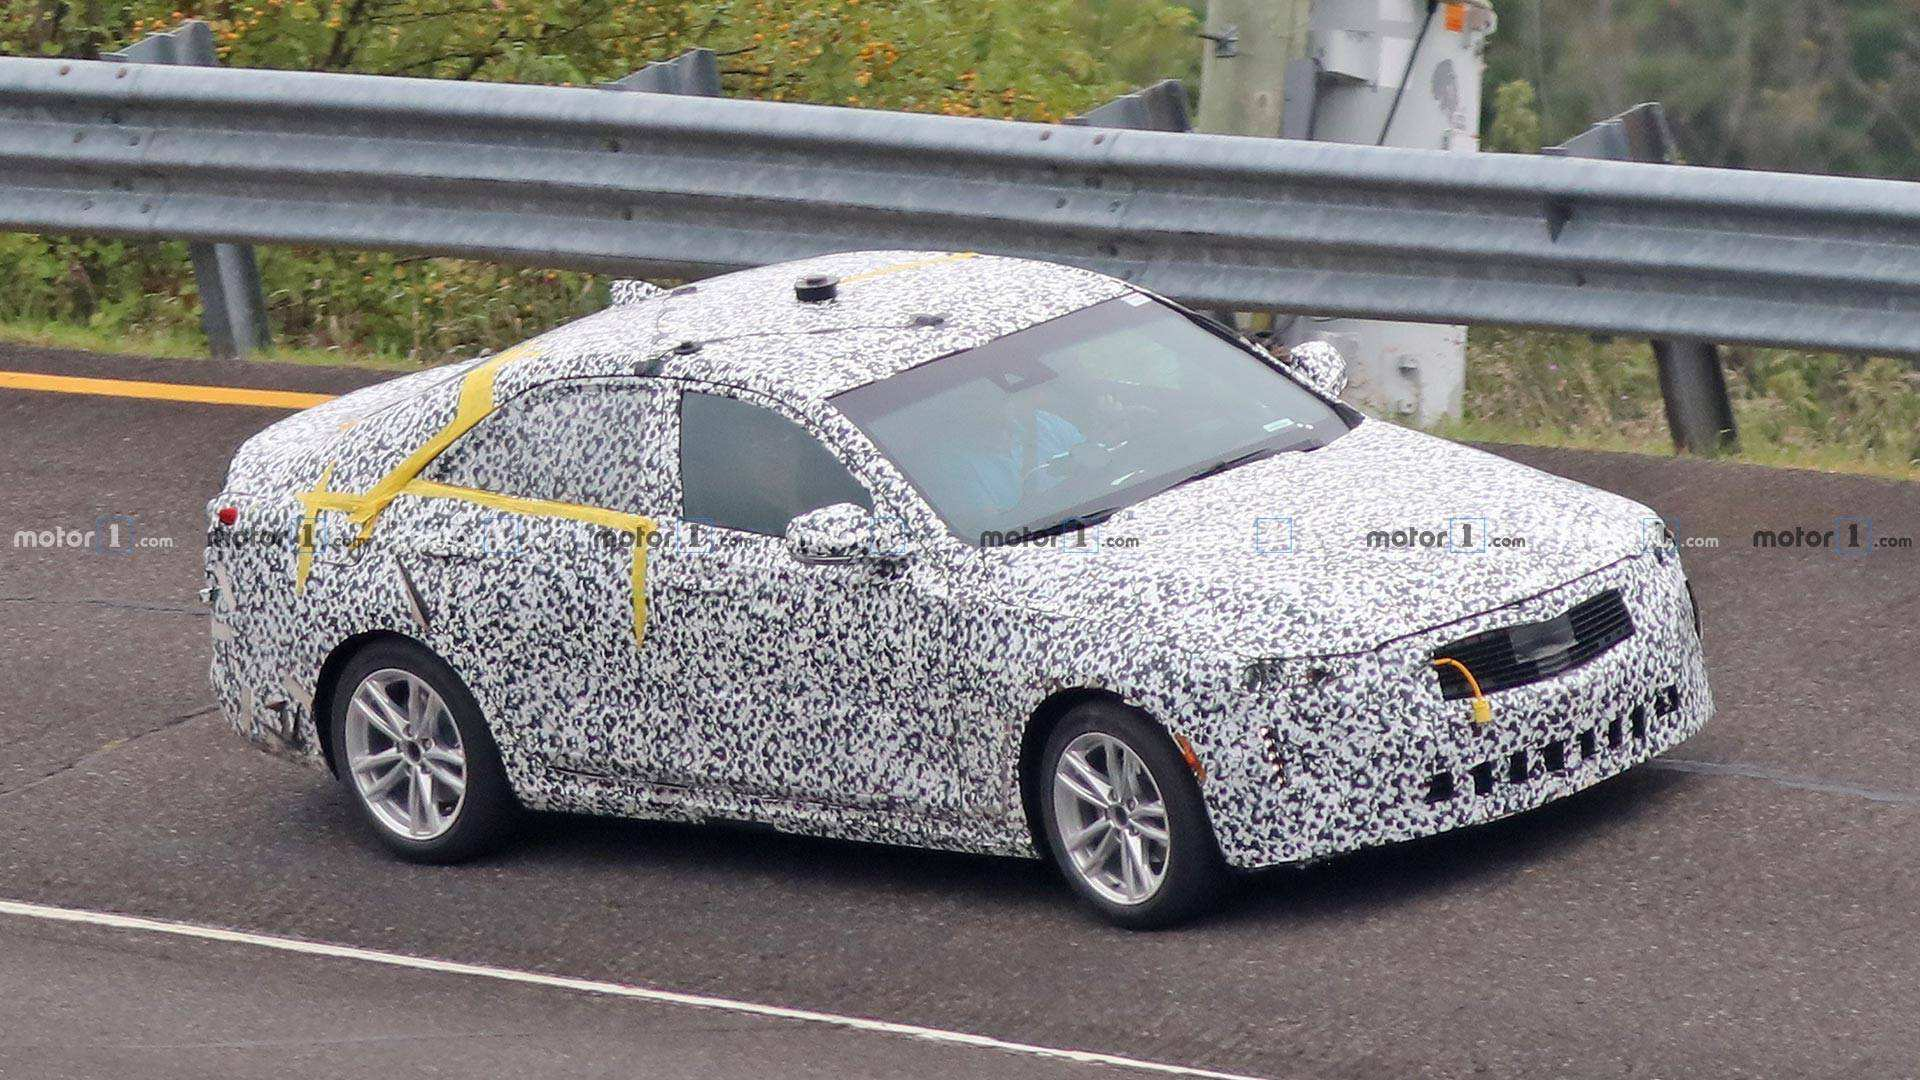 64 All New Cadillac Spy Shots Redesign by Cadillac Spy Shots